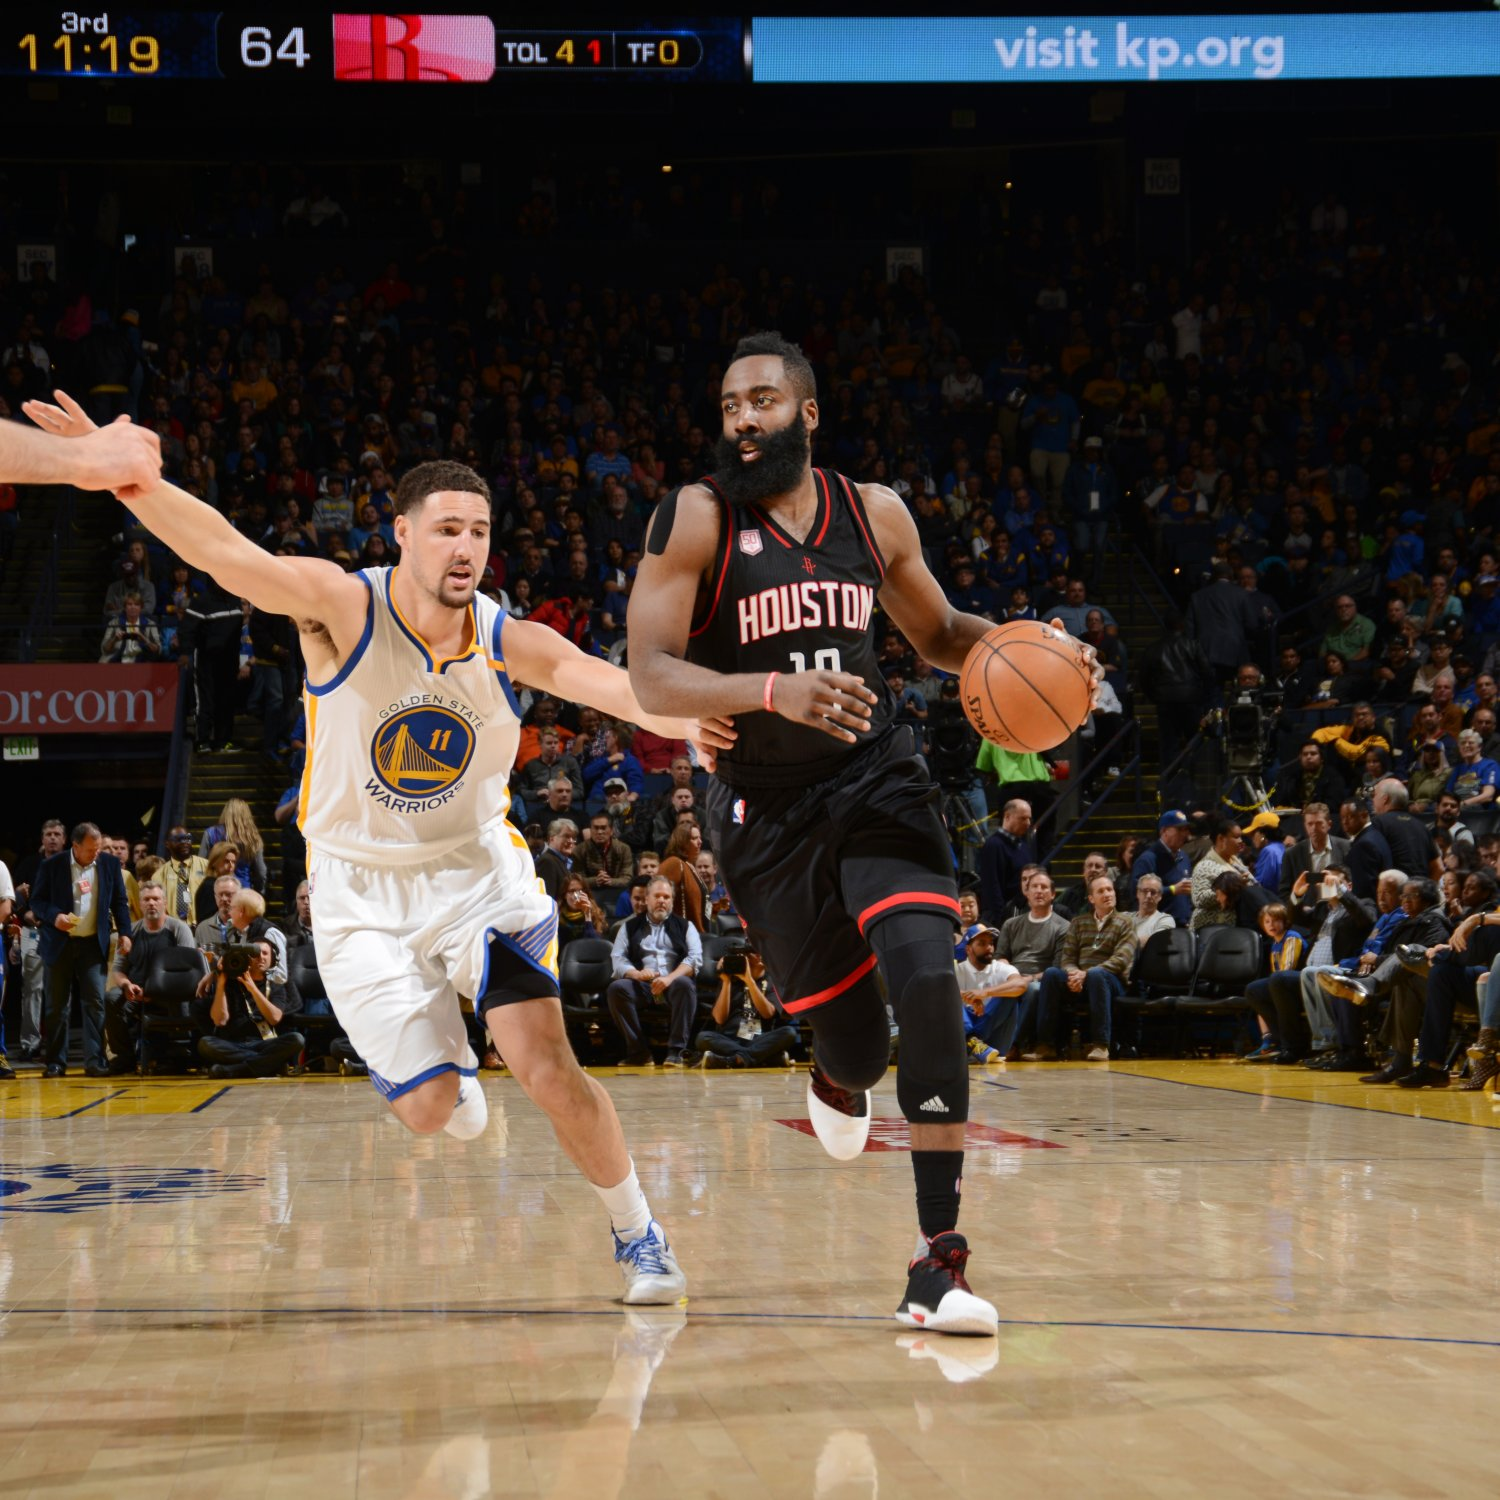 Rockets Vs. Warriors: Score, Highlights, Reaction From